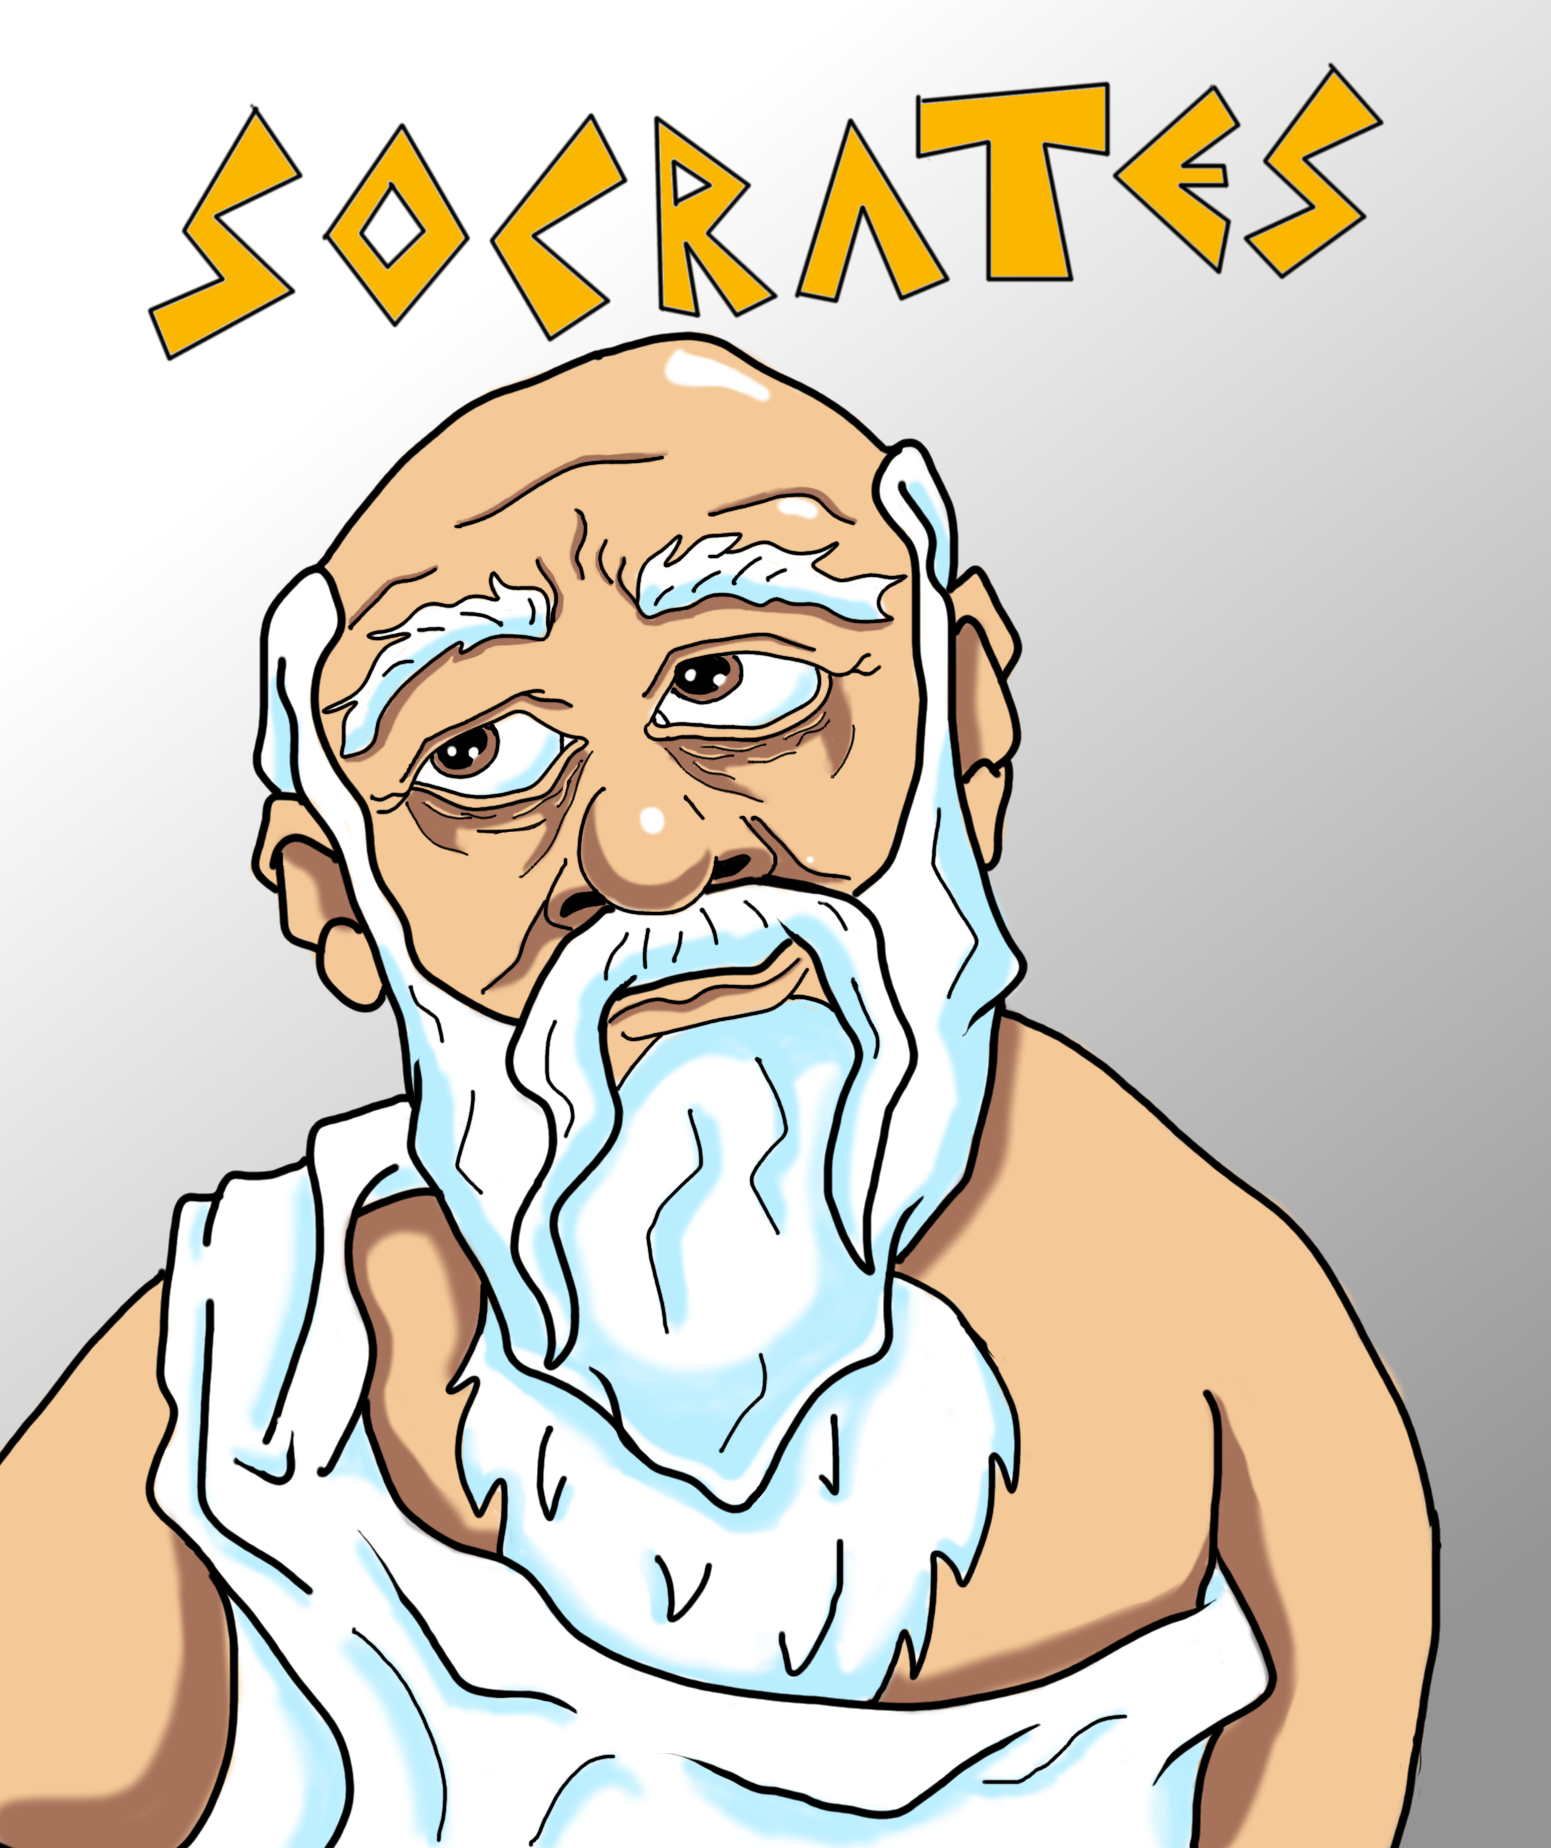 Philosophy clipart socrates Mitch There Plato's in Francis